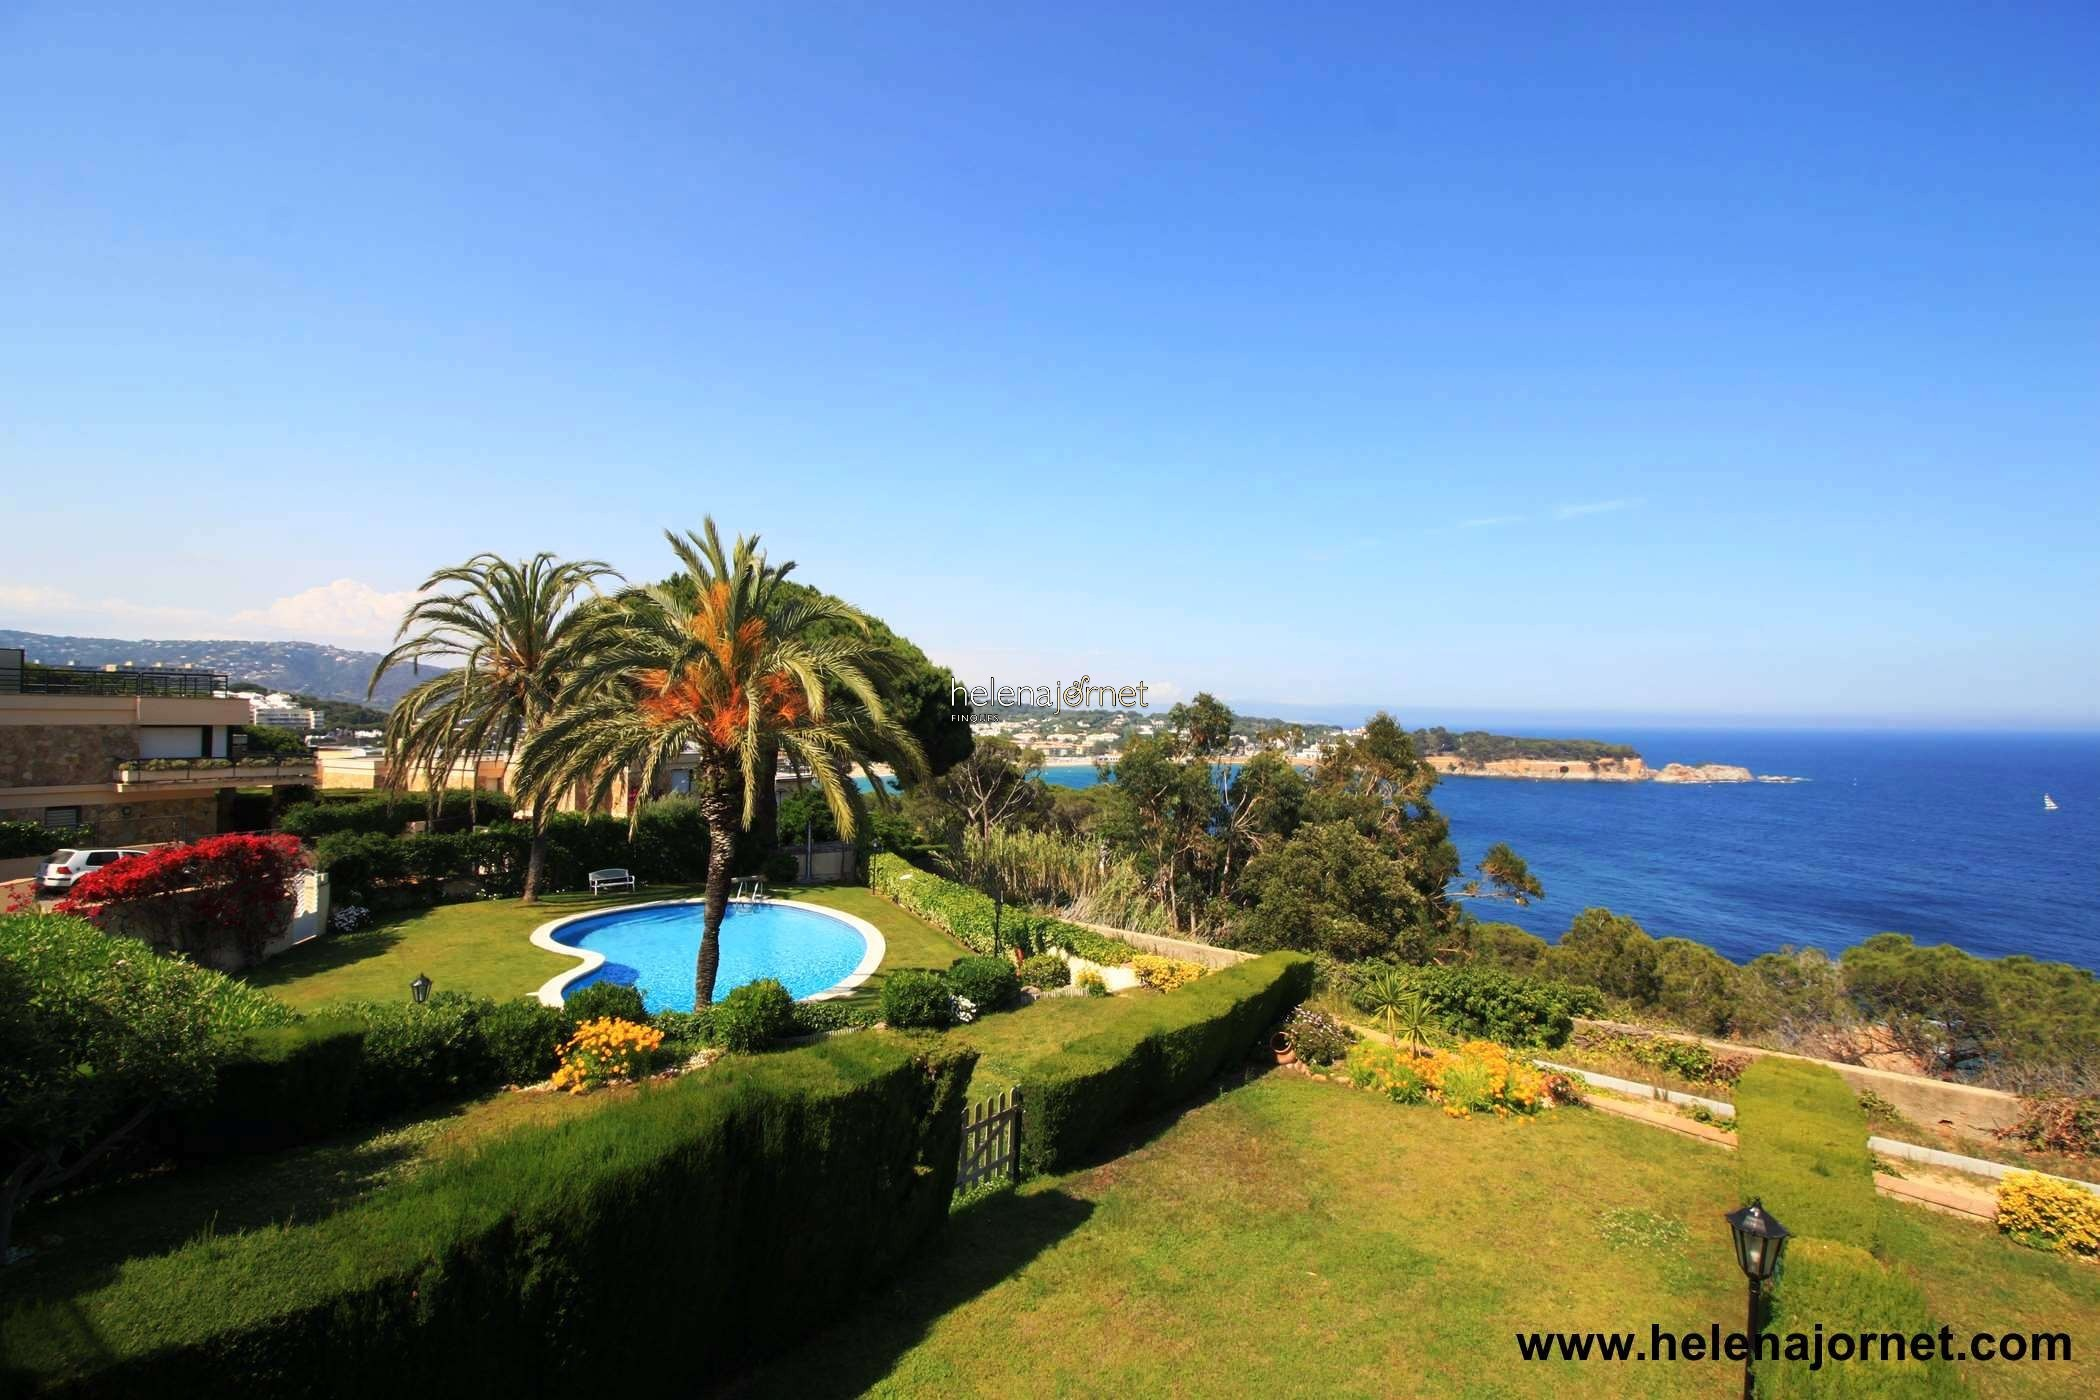 Apartment with stunning sea views - 70005 Montecarlo